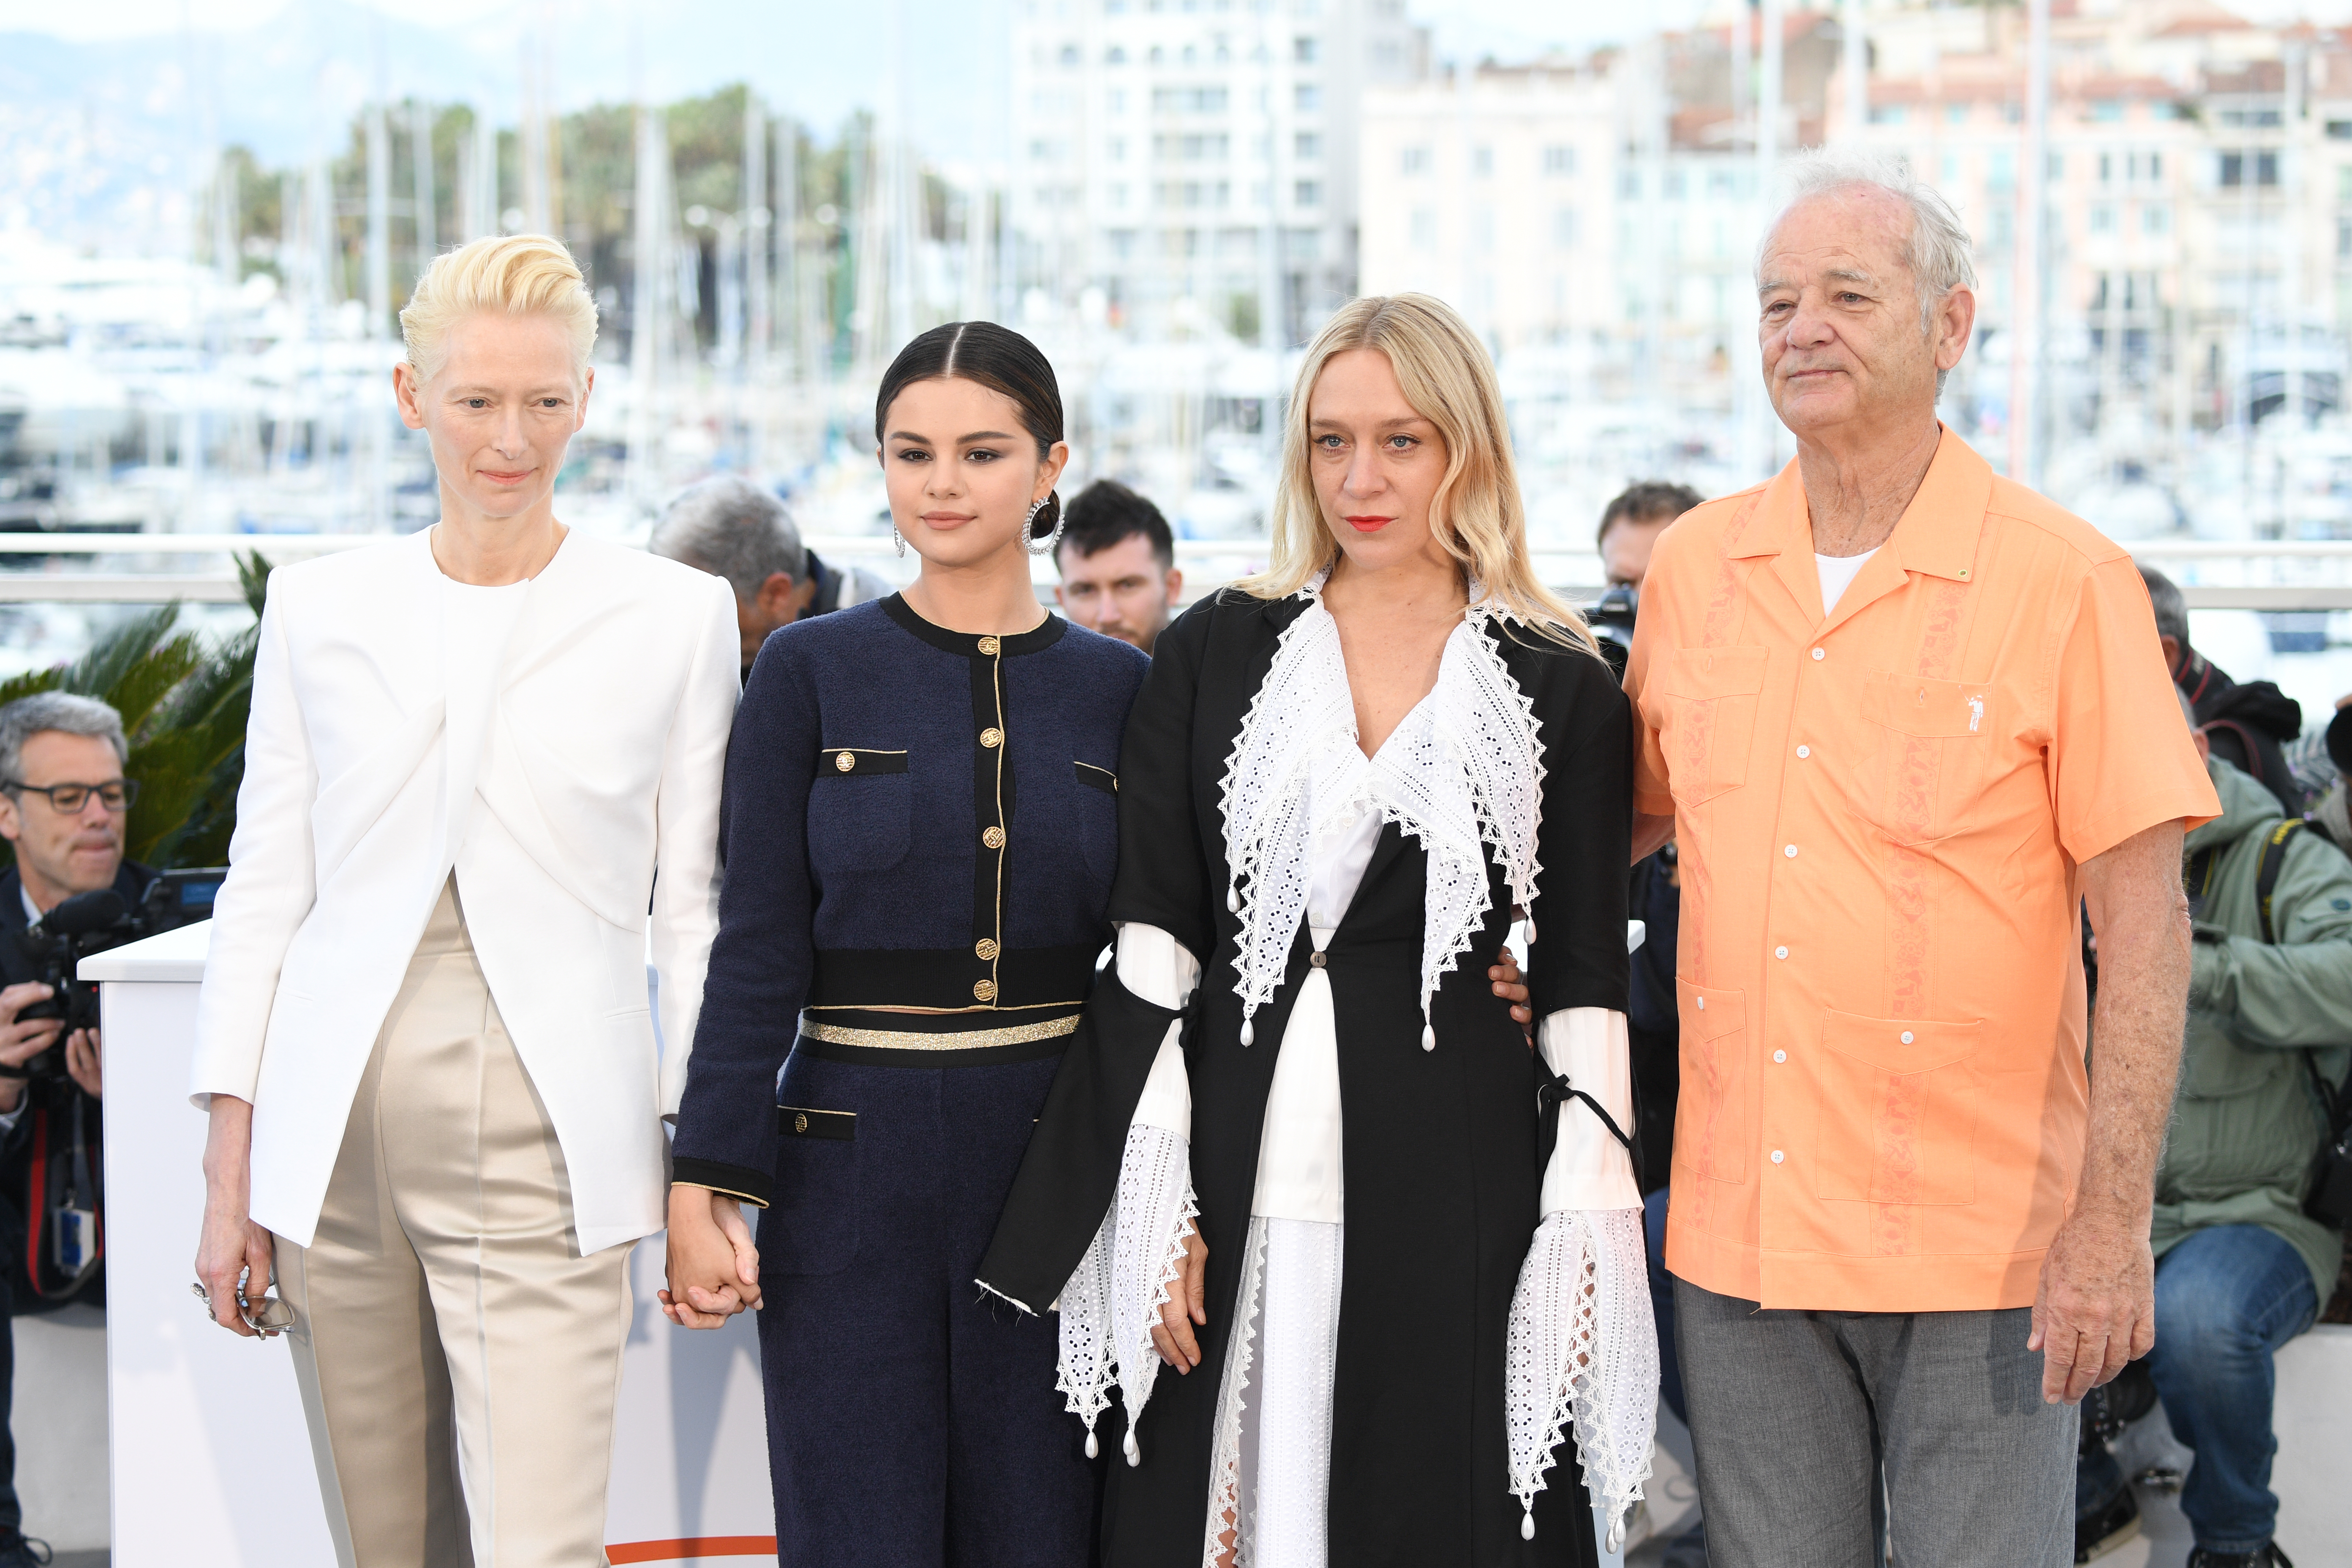 Tilda Swinton, Selena Gomez, Chloe Sevigny and Bill Murray at the 72nd annual Cannes Film Festival on May 15, 2019 in Cannes, France.